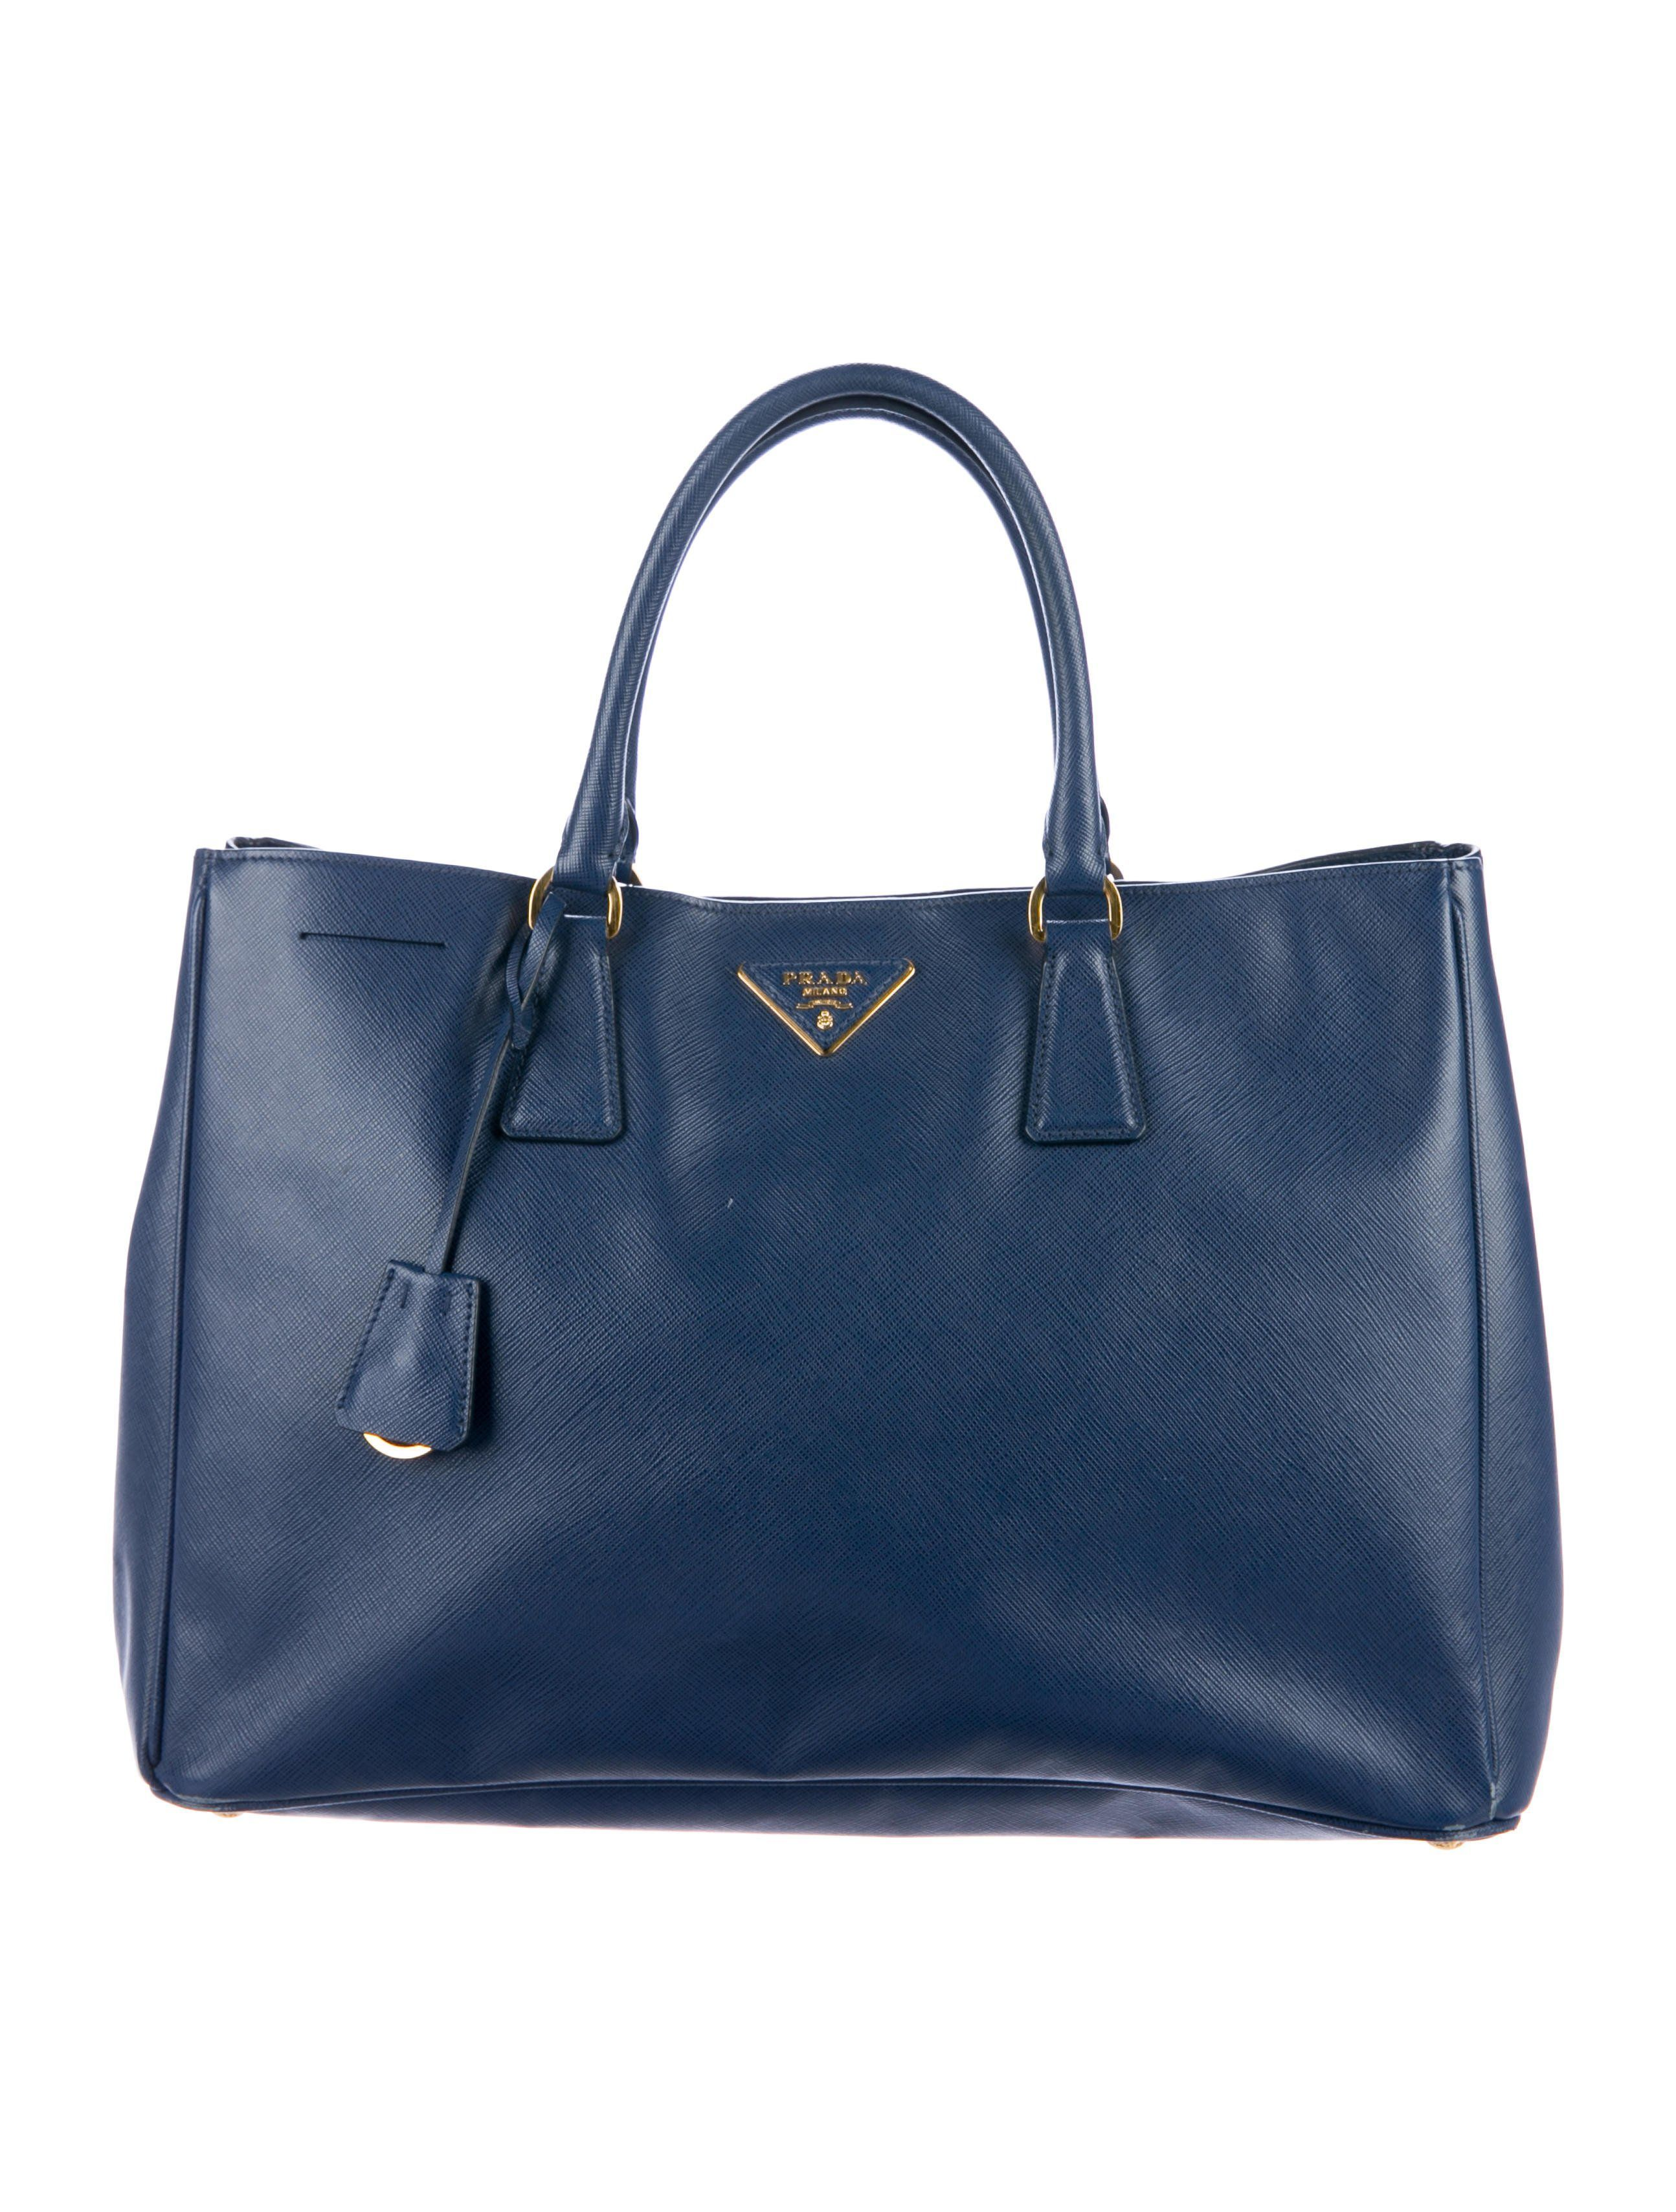 495e95ffed54 ... france prada large saffiano lux tote handbags pra204446 the realreal  58804 d1851